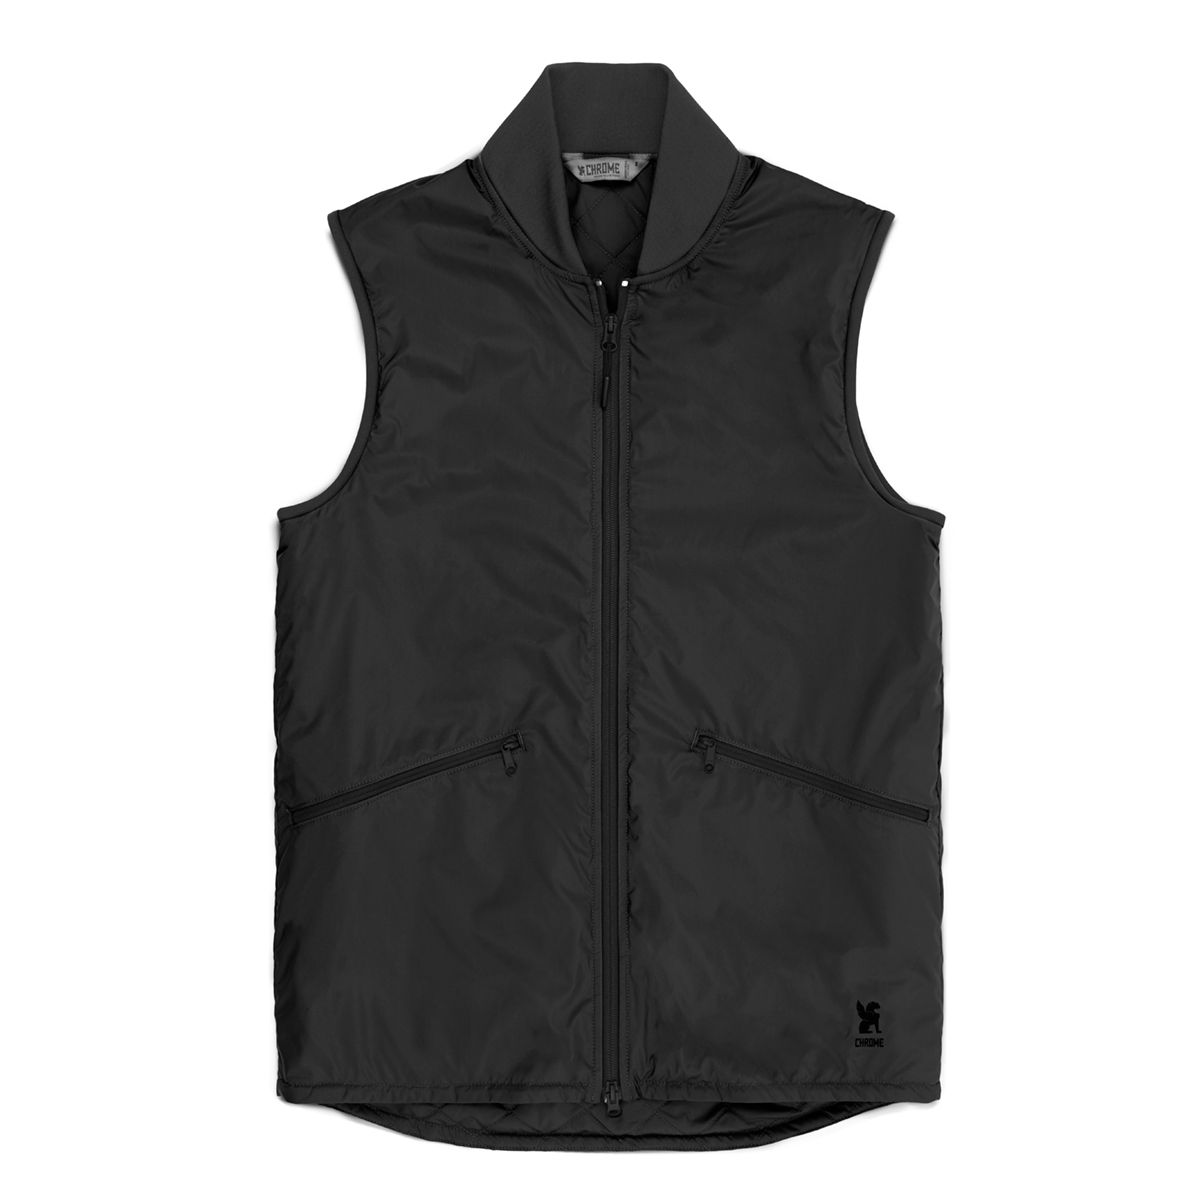 BEDFORD INSULATED VEST